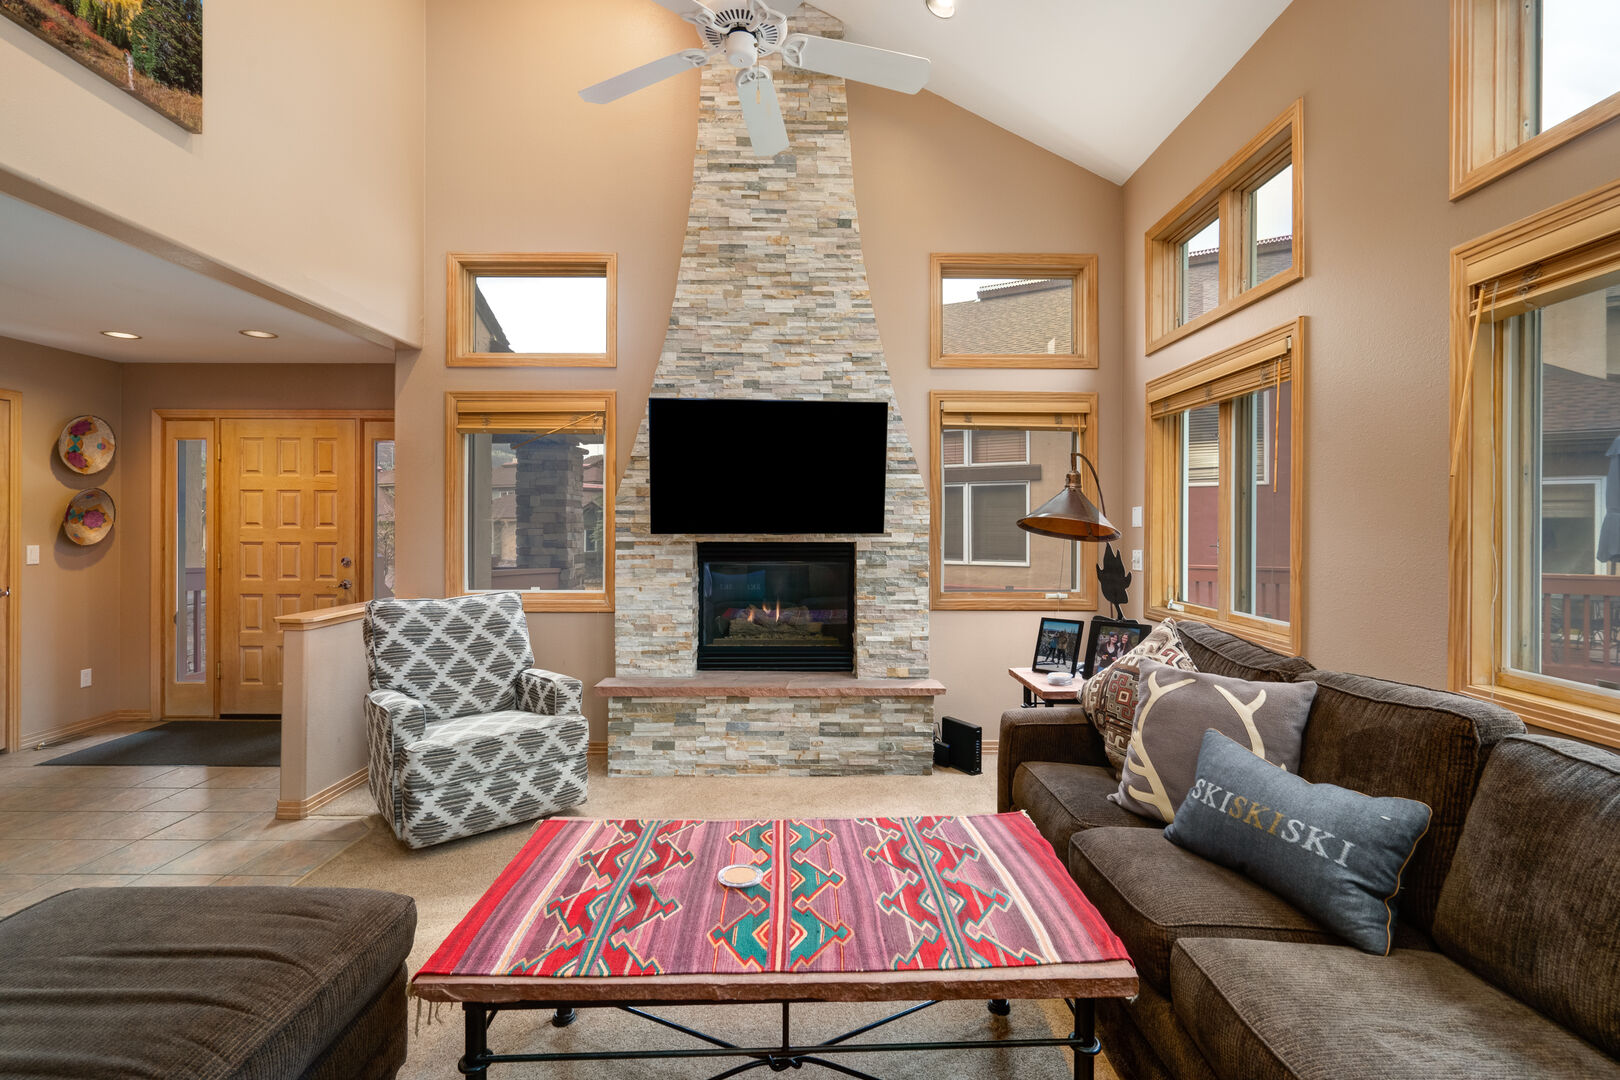 Gorgeous stacked stone fireplace to warm up on chilly nights!